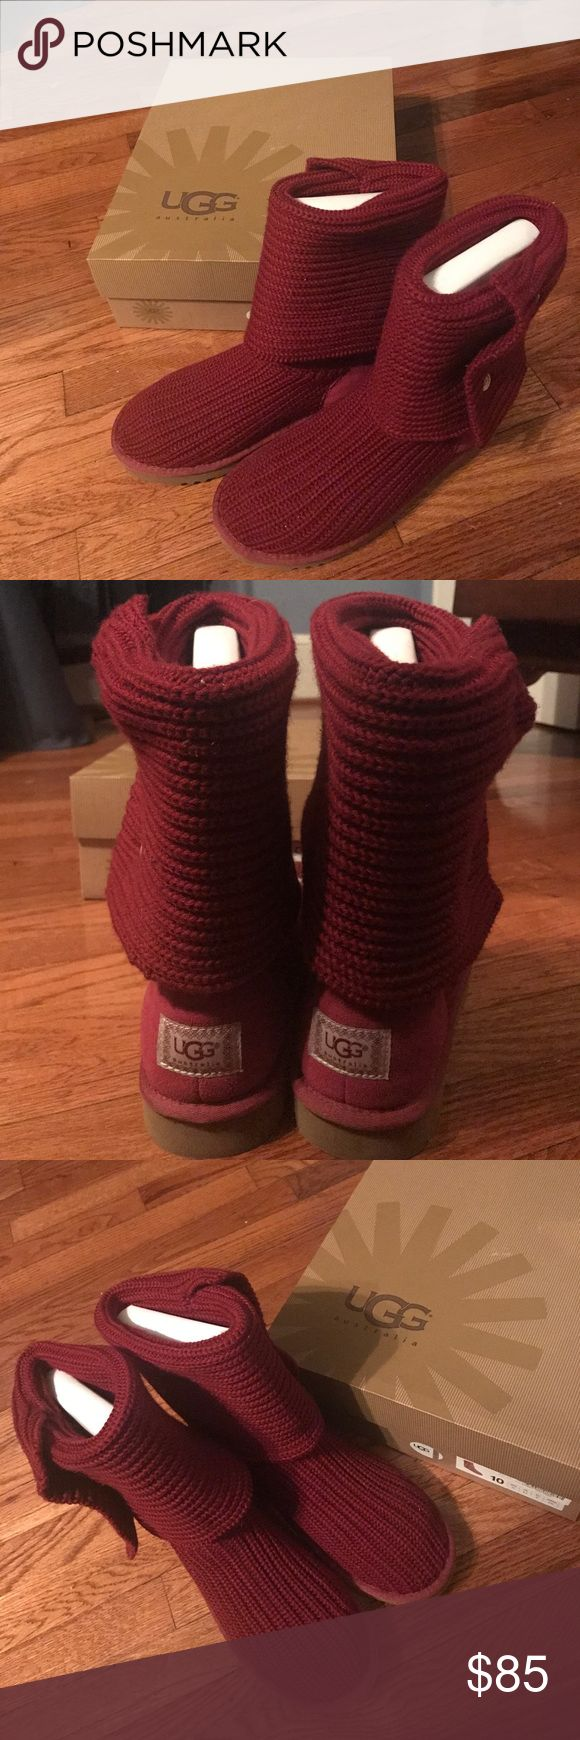 BRAND NEW UGG Cardy Knit Boots with Original Box!! The UGG boots are in perfect condition. They are from the Cardy Knit boot line. They have been worn once. They can be worn folded down and come up mid calf or unfolded and come slightly below the knee. They will be shipped in the original box. The color is Burgundy. UGG Shoes Winter & Rain Boots